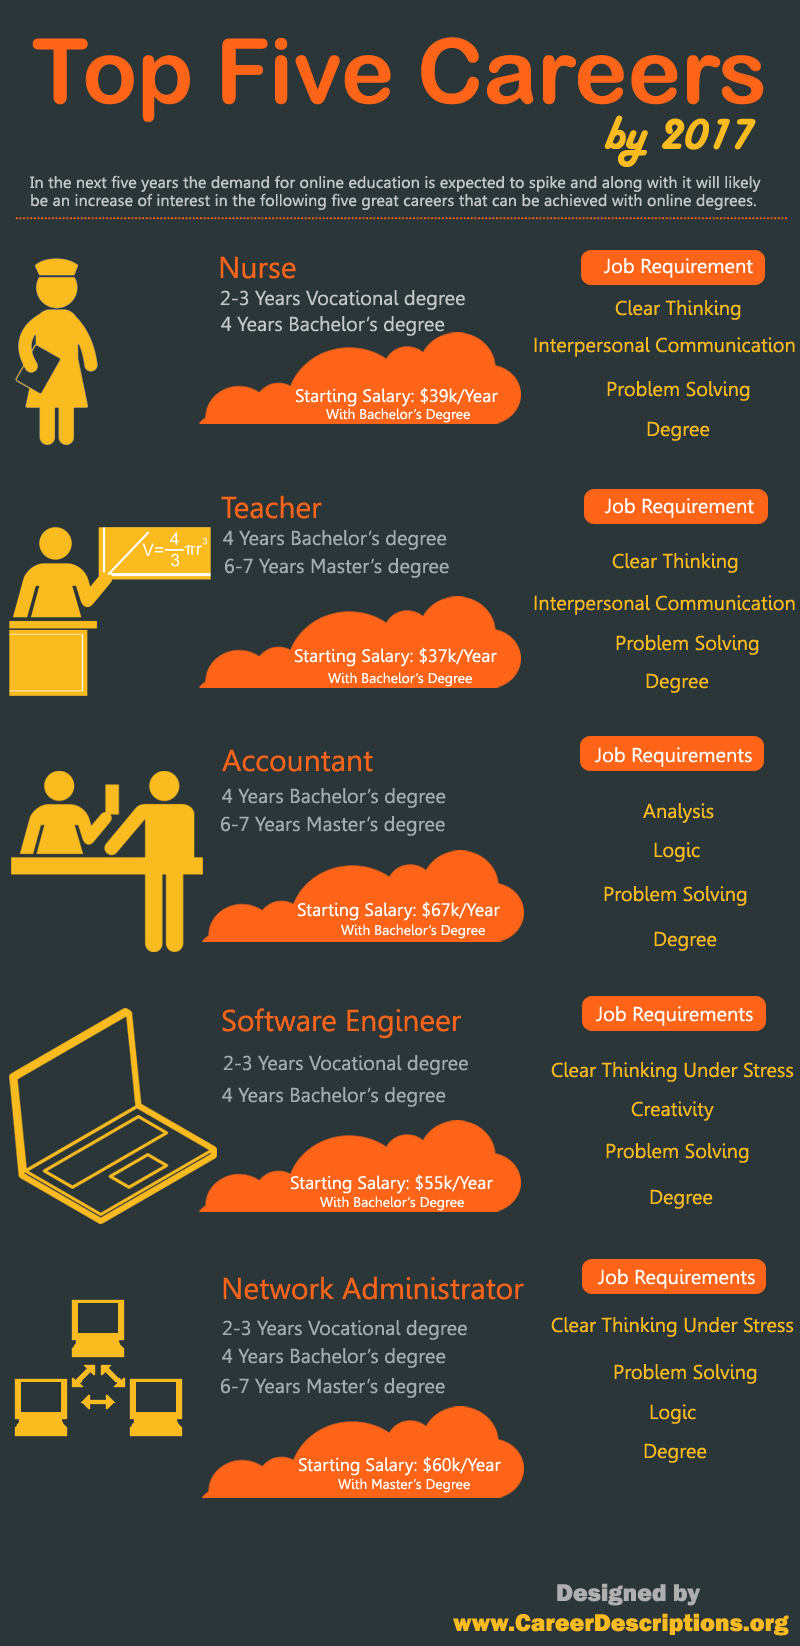 Top 5 Careers By 2017